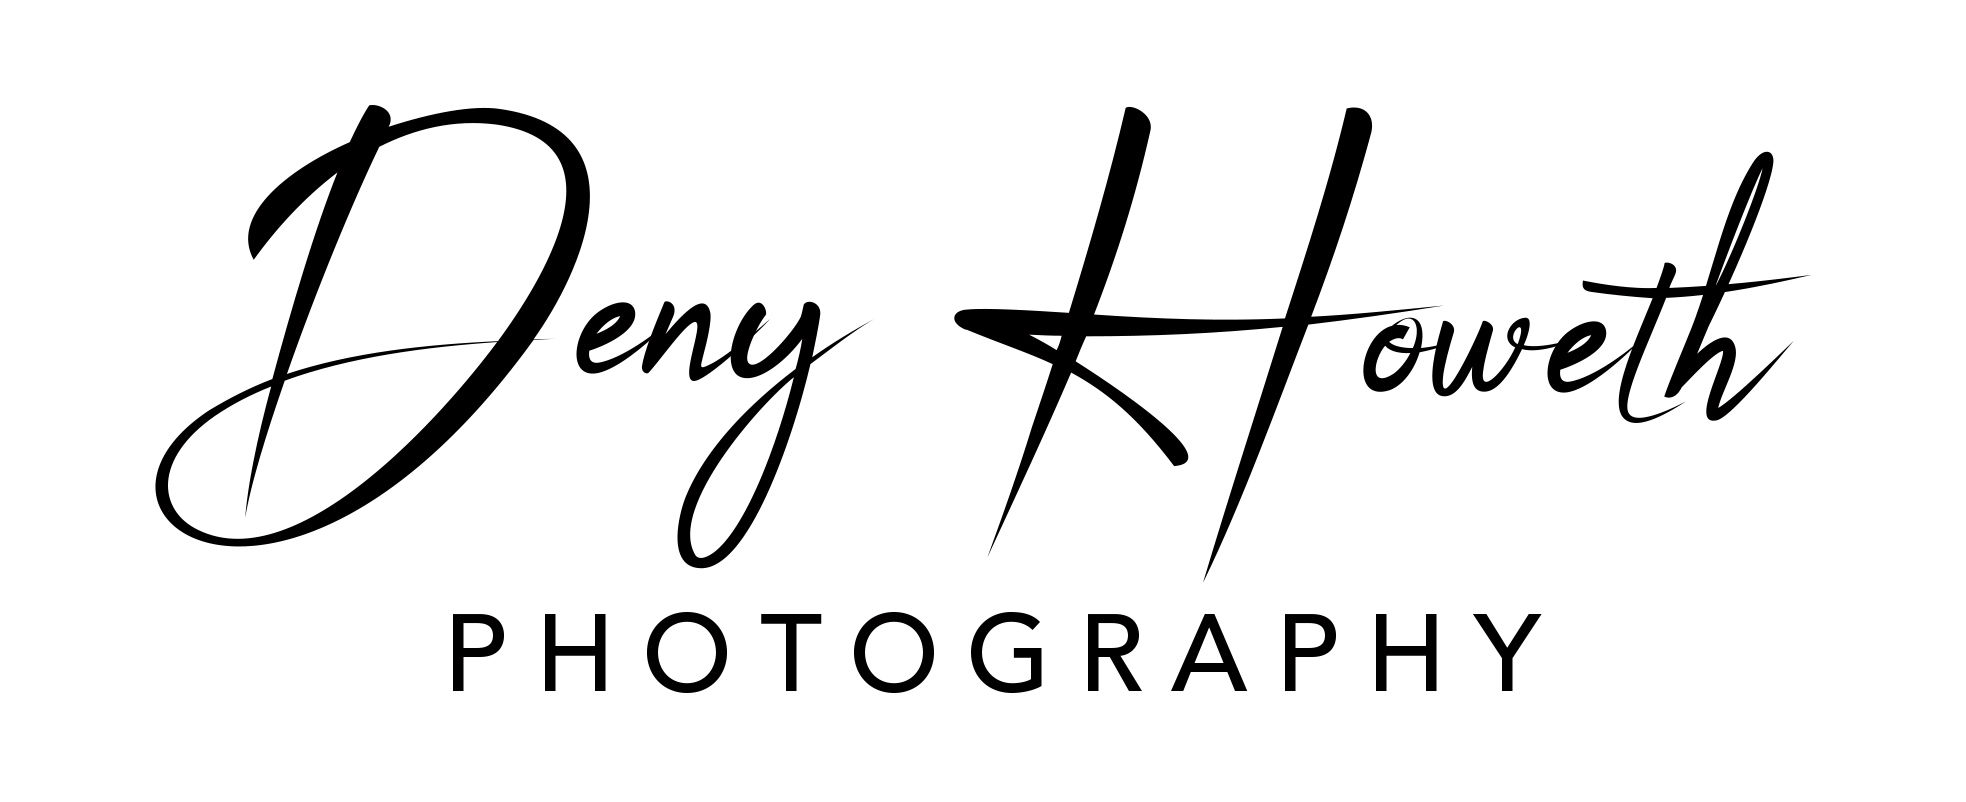 deny howeth photography